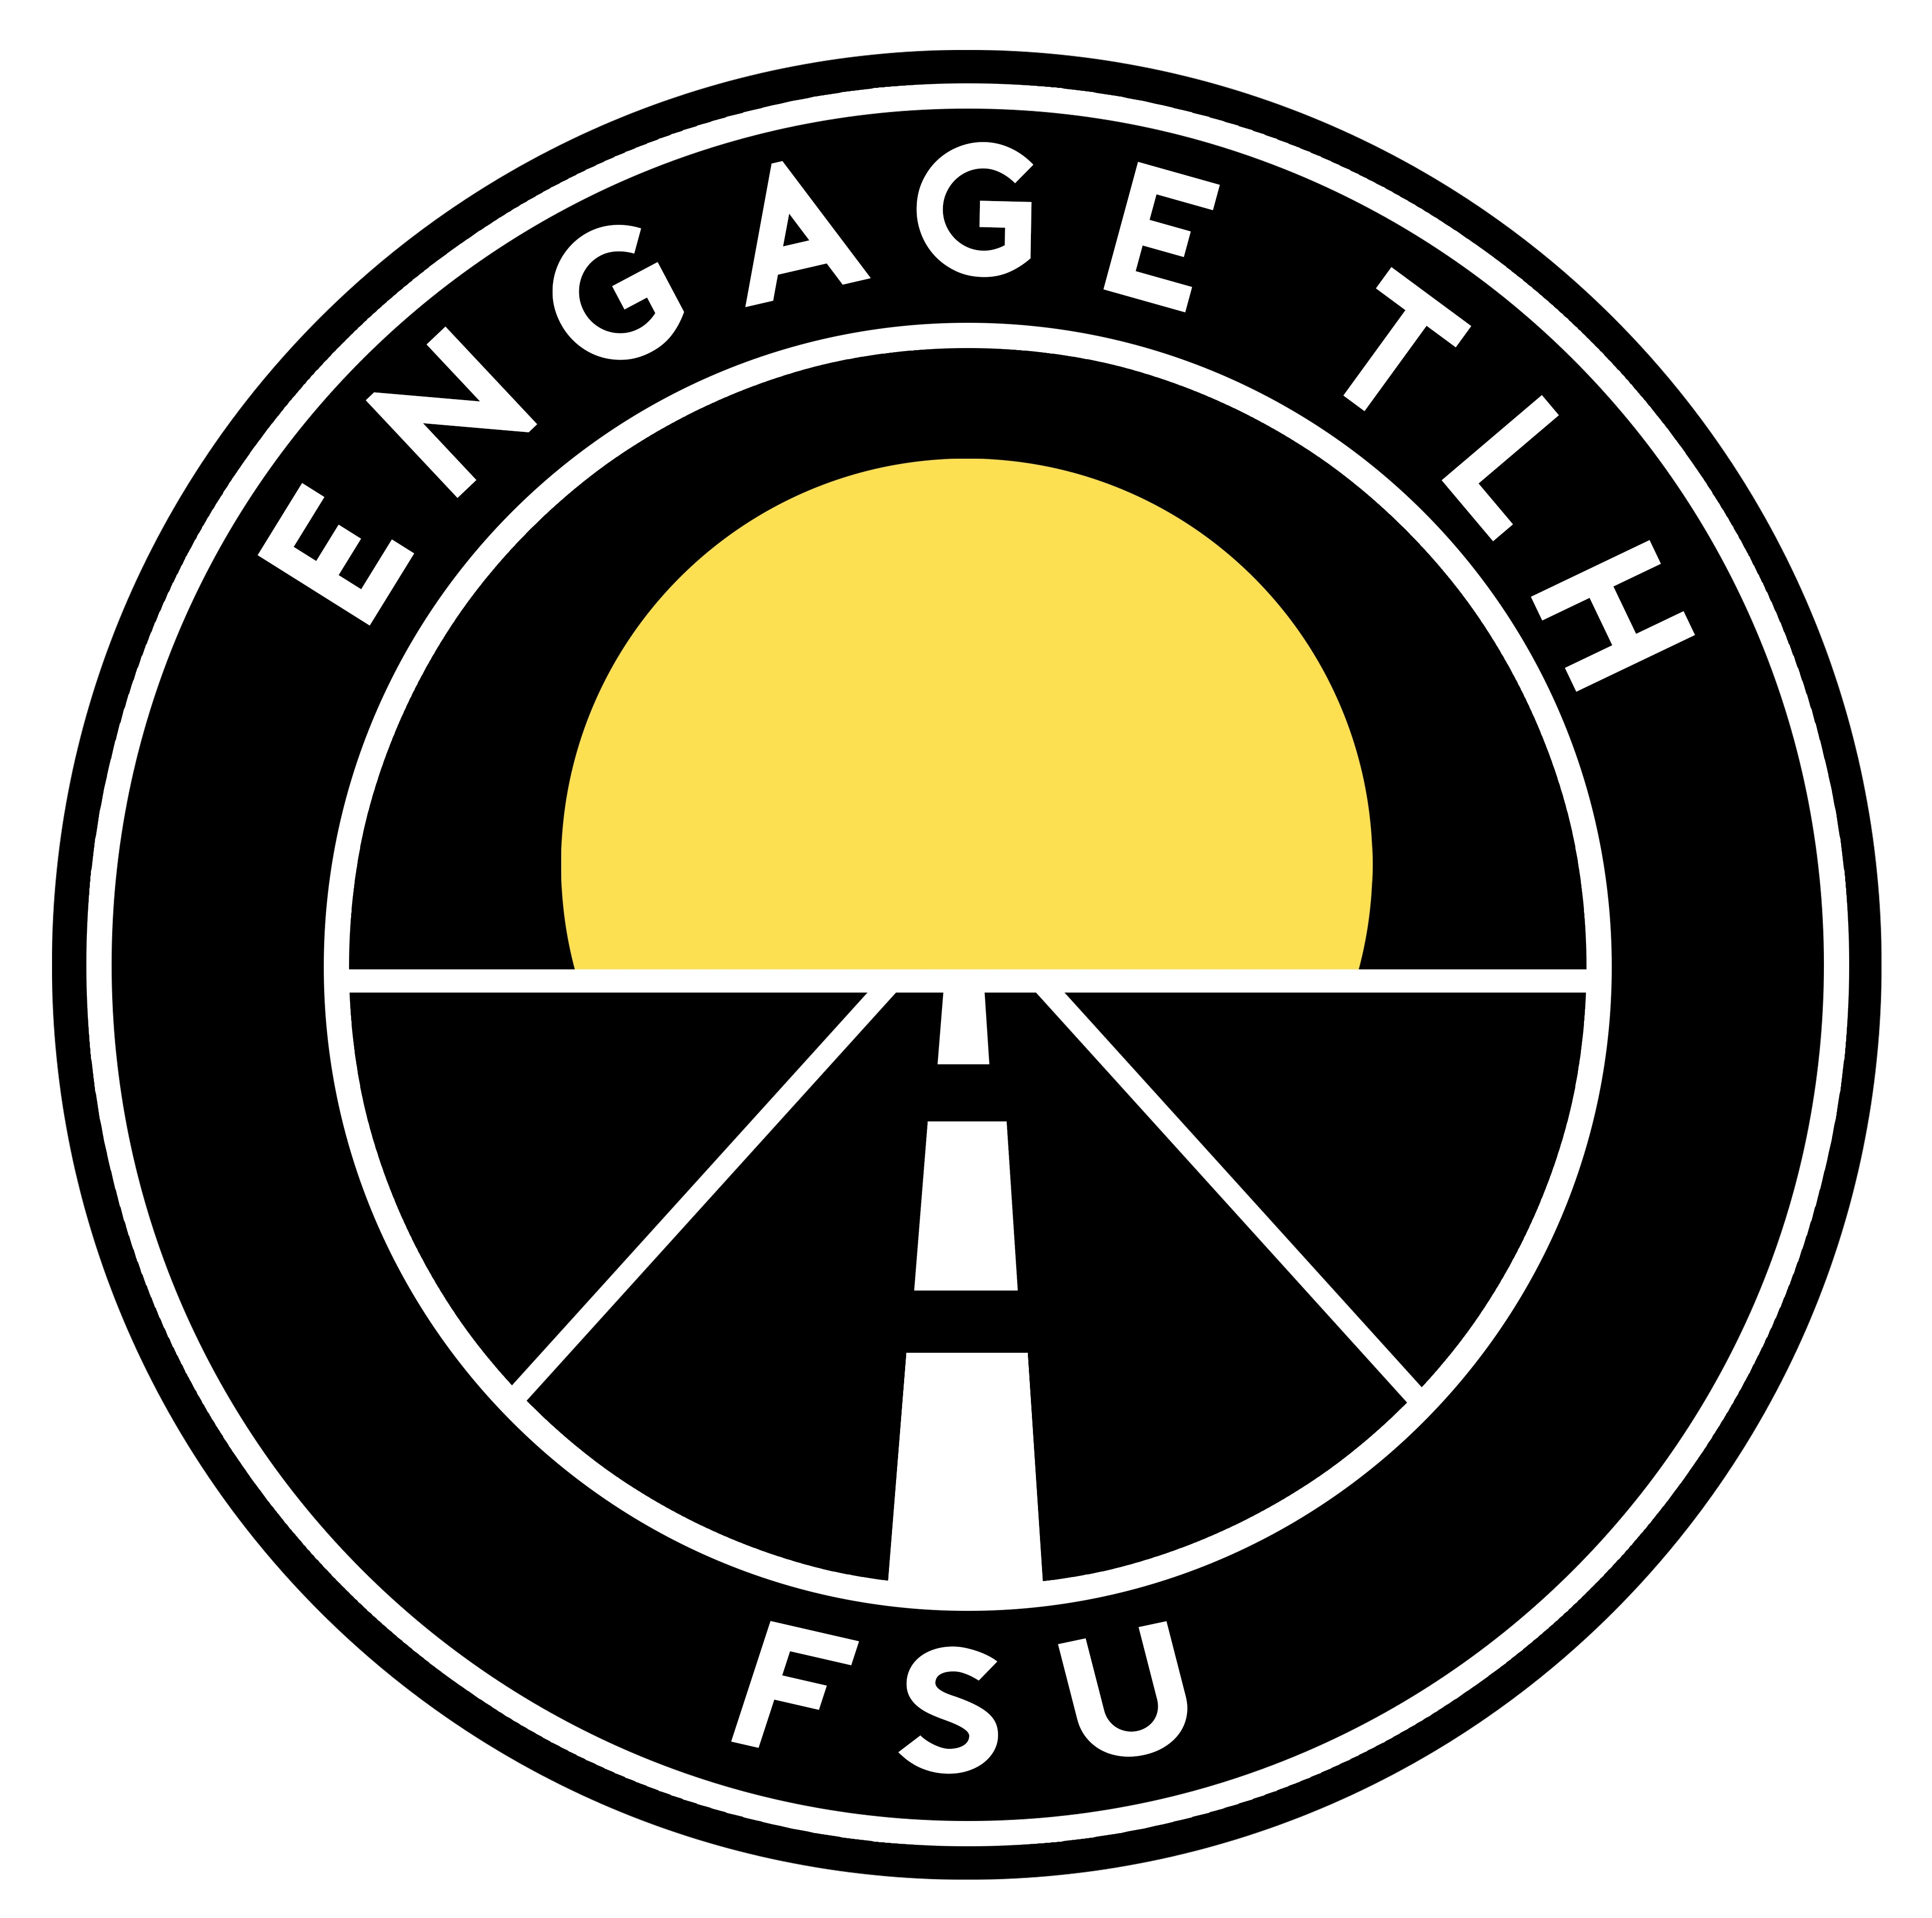 The image depicts the logo for Engage TLH FSU, which is a two-lane road leading toward a rising sun